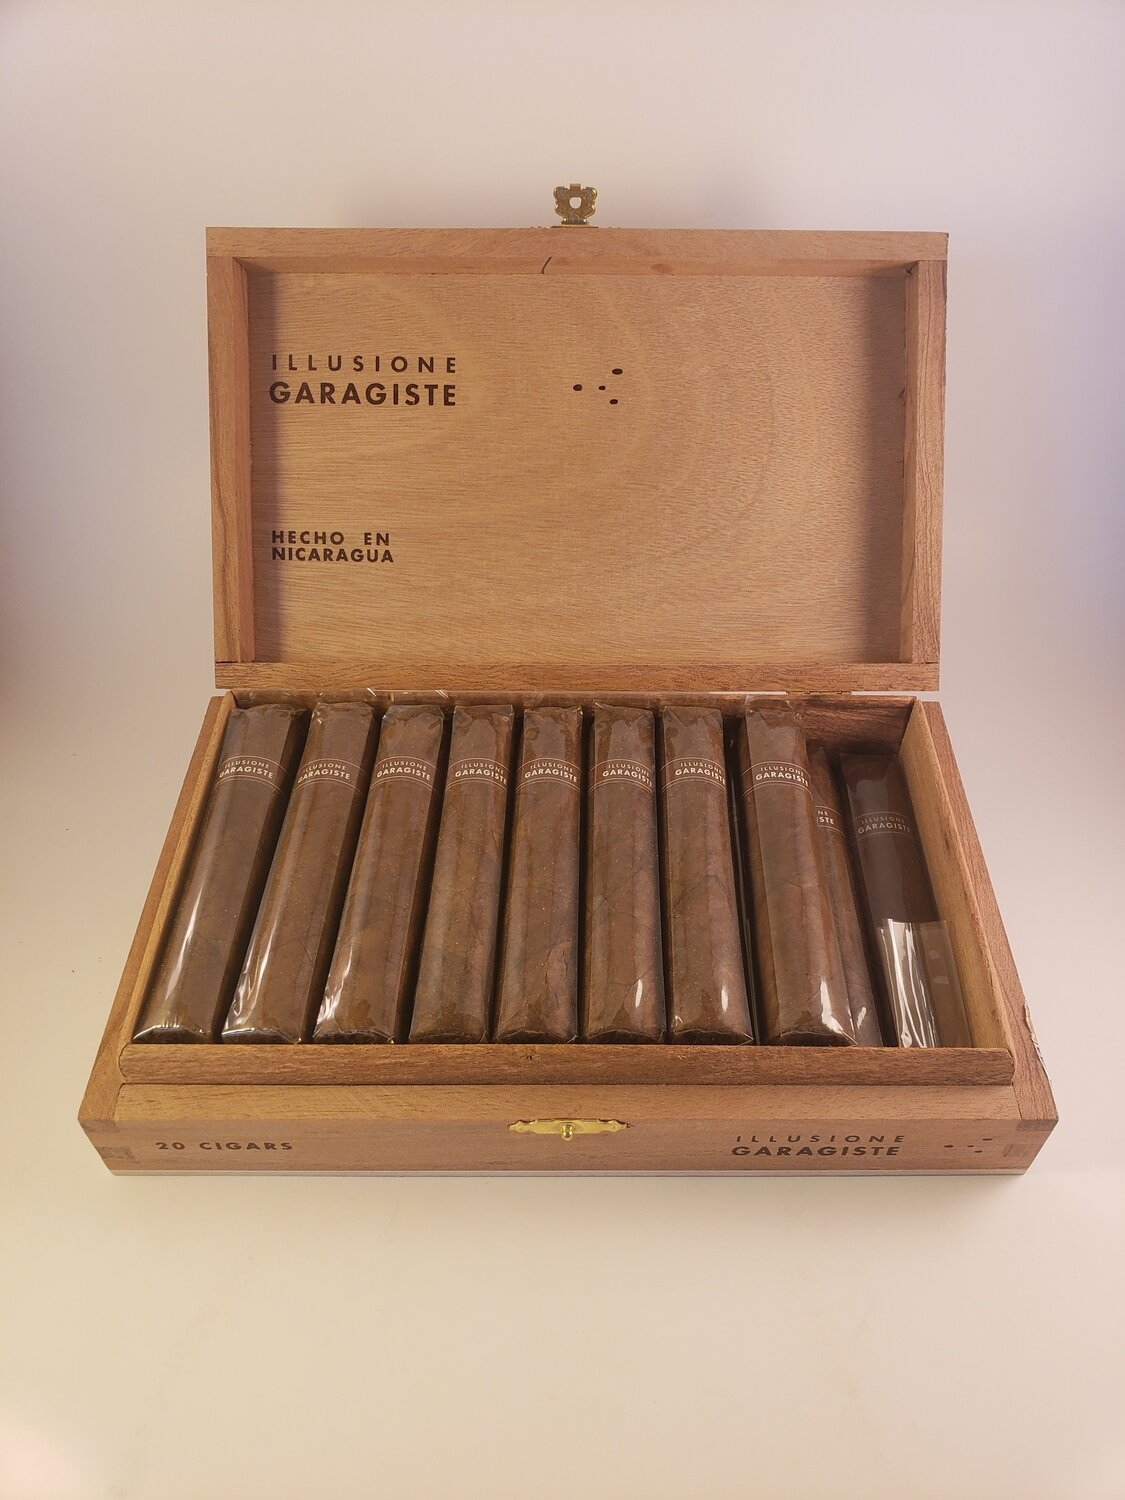 Illusione Garagiste Robusto 5 x 50 Single Cigar